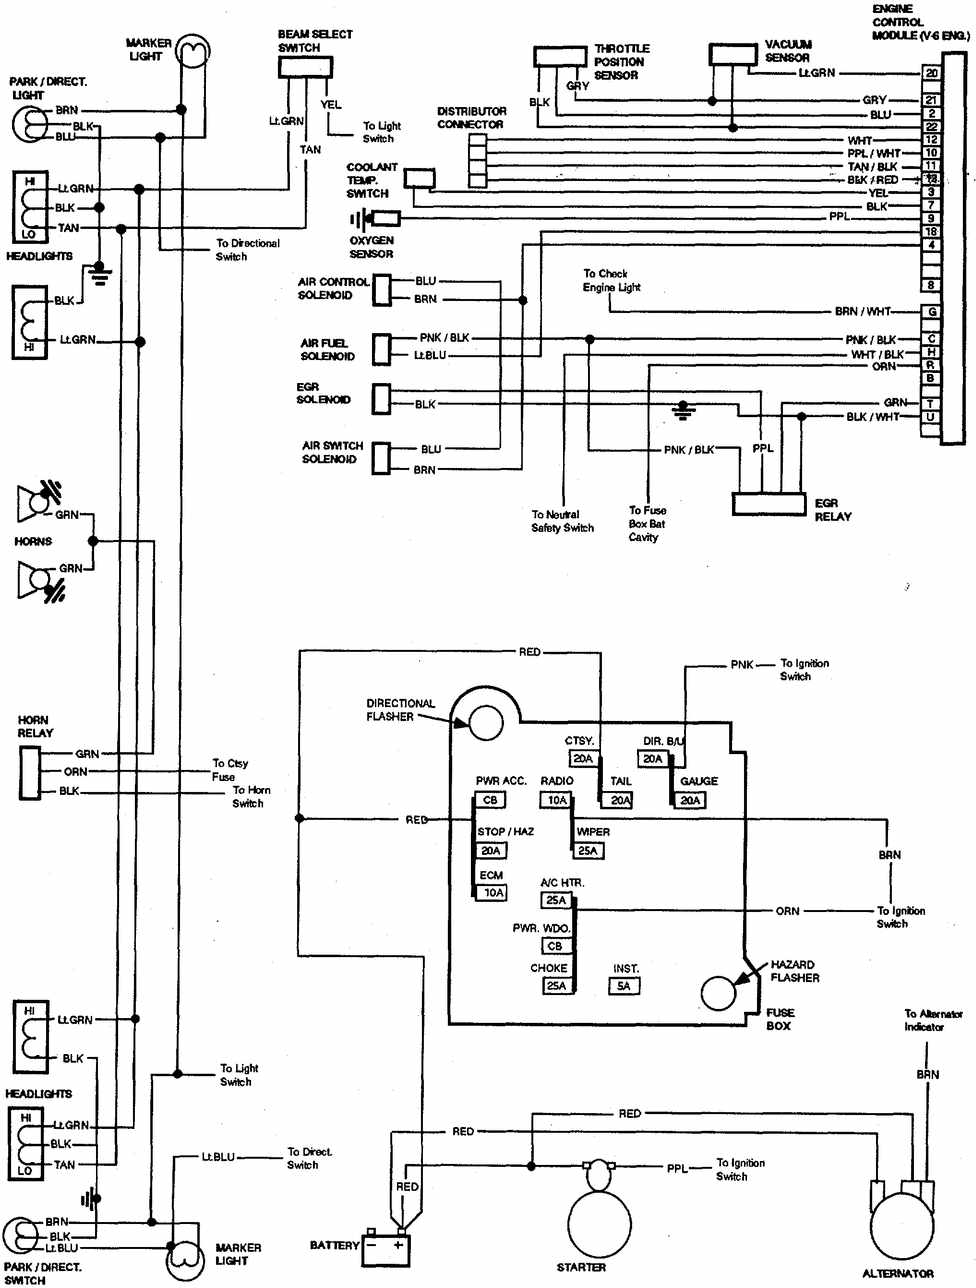 2007 c5500 wiring diagram